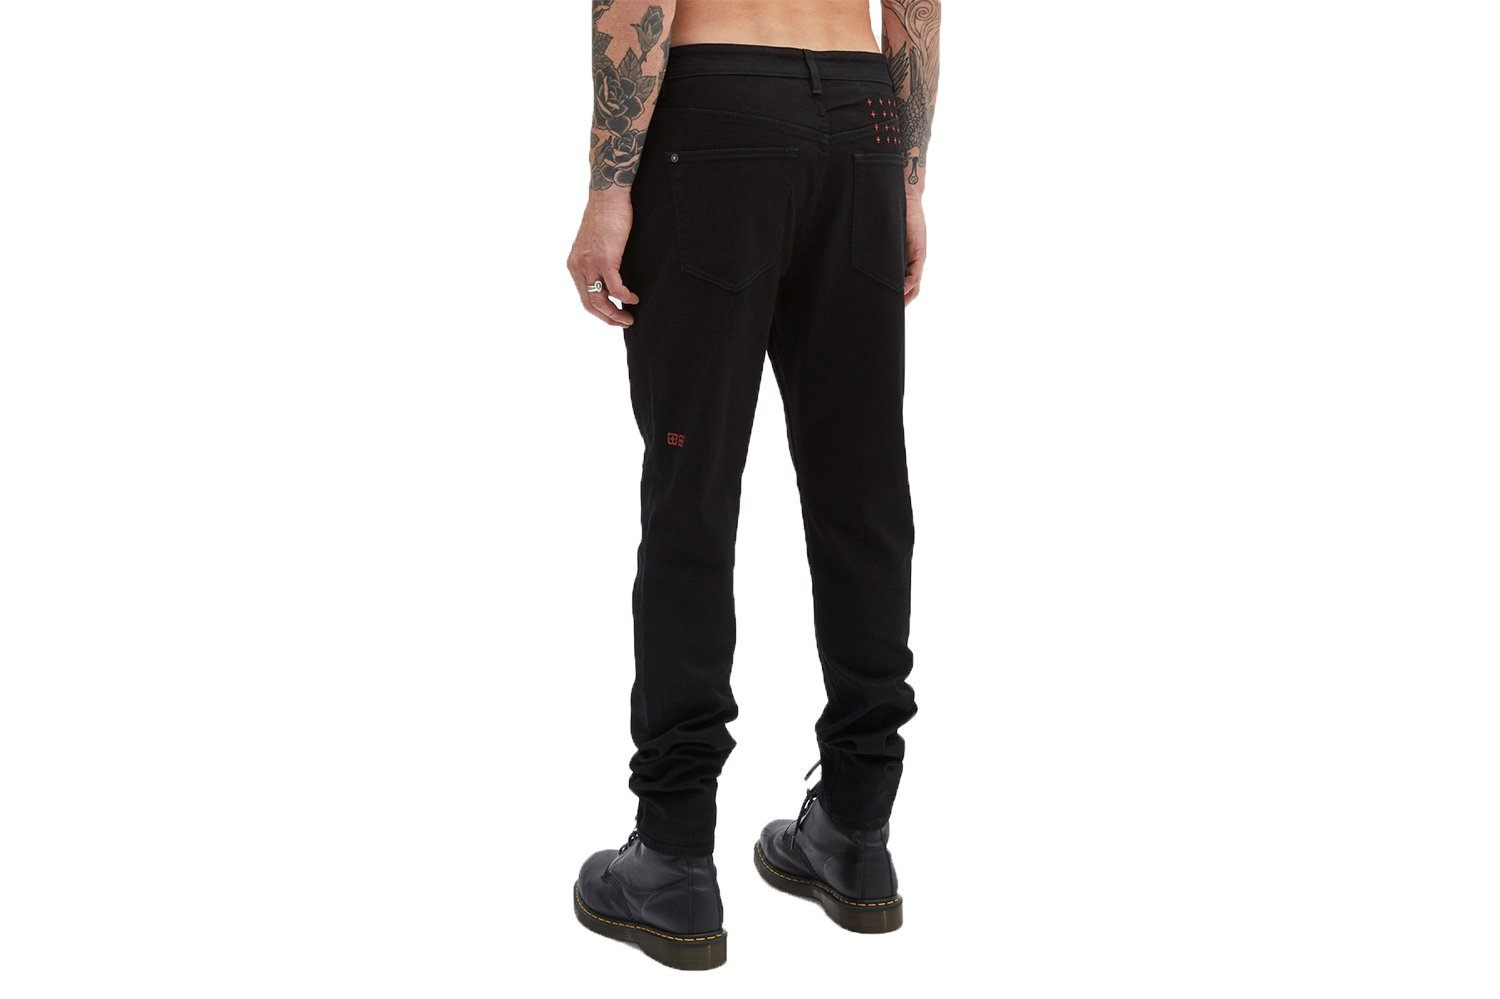 WOLF GANG LAID BLACK-43900 MENS SOFTGOODS KSUBI